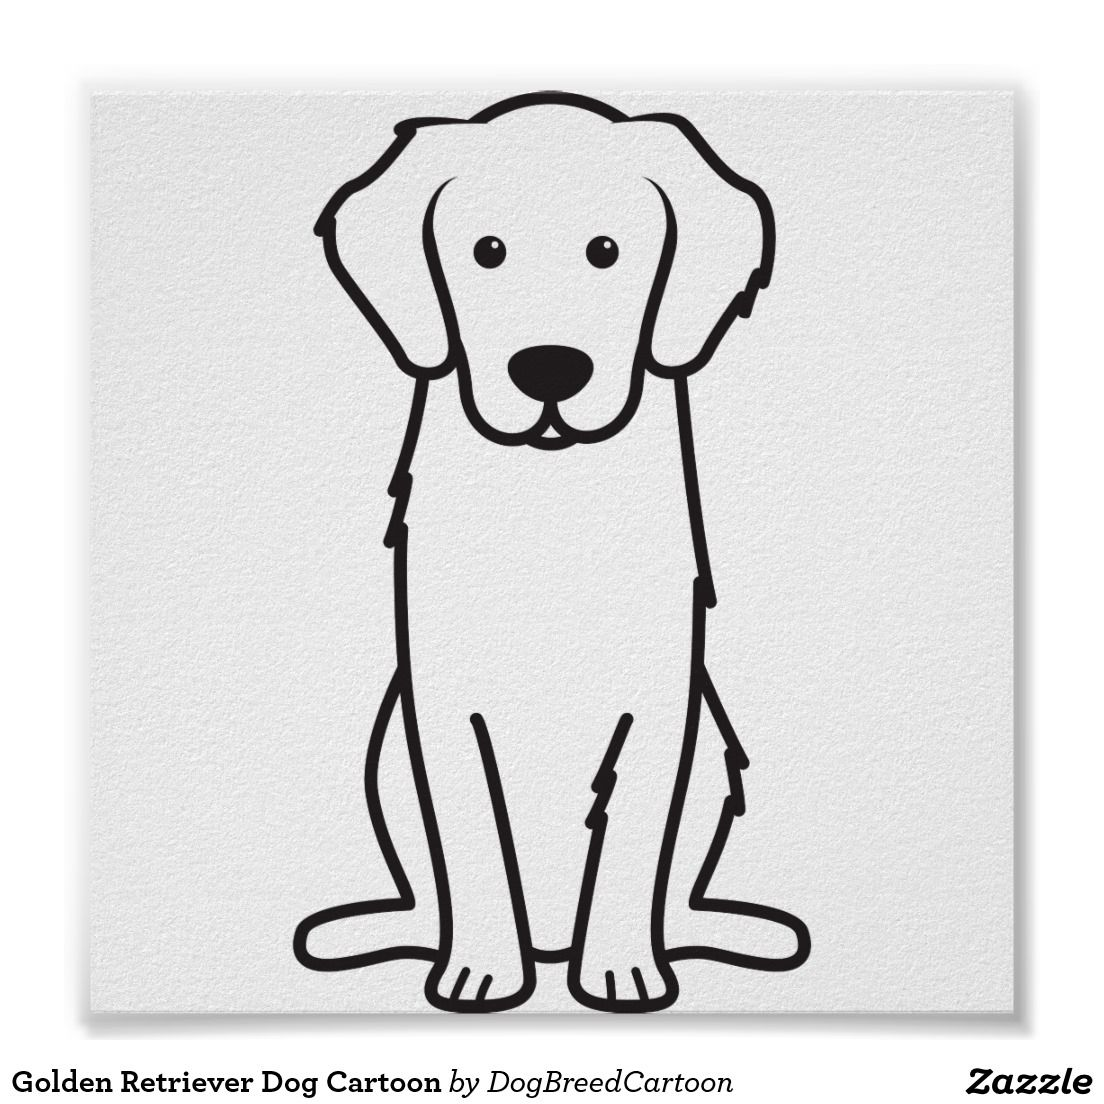 Golden Retriever Dog Cartoon Poster Zazzle Com Cartoon Dog